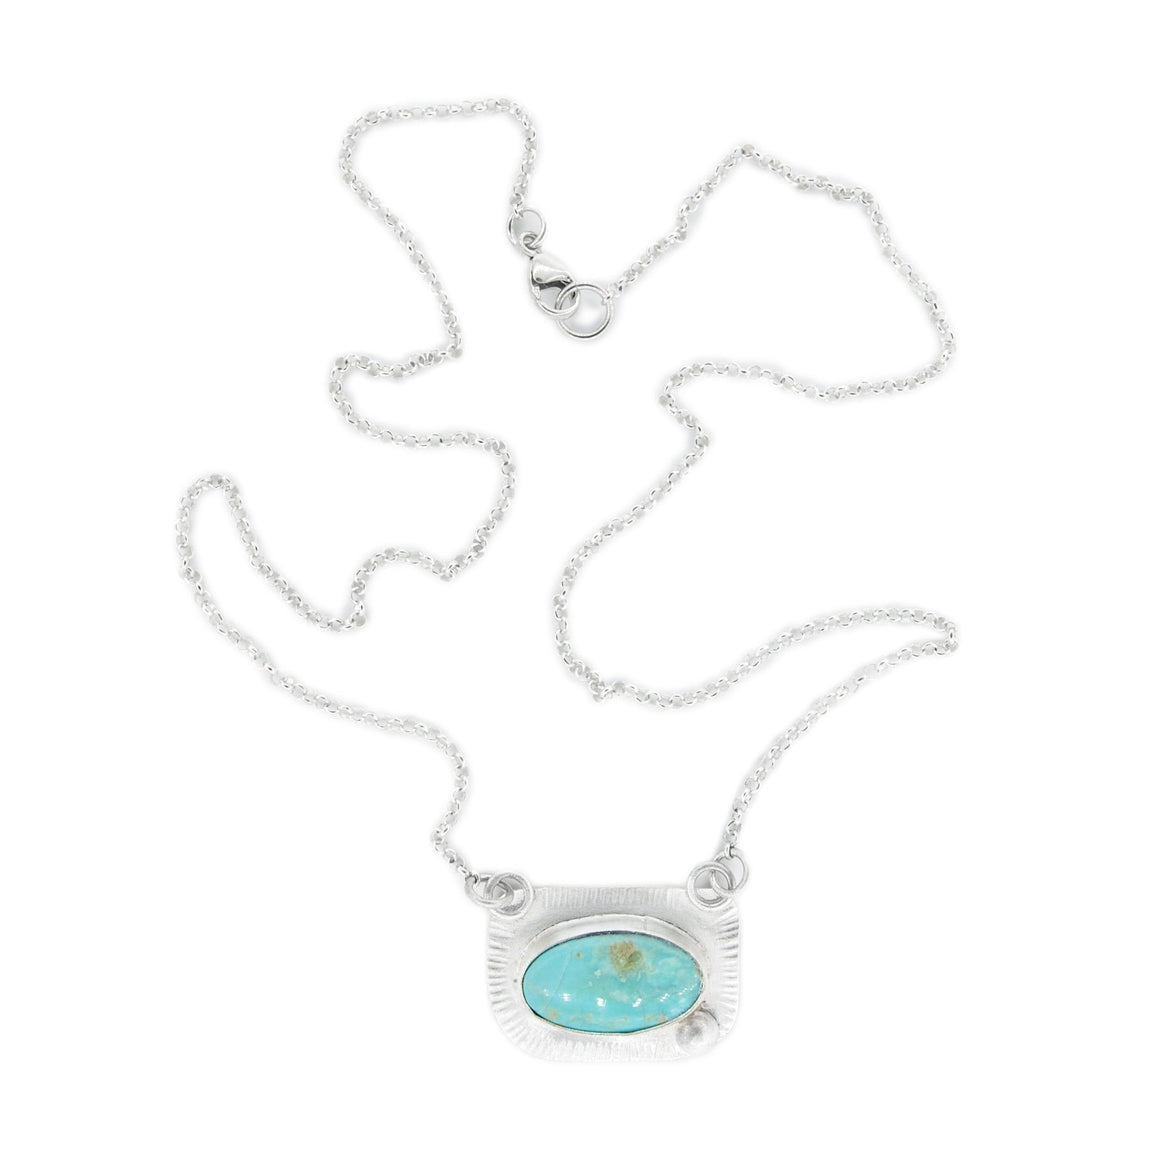 Silver Necklace with Turquoise by Original Sin Jewelry